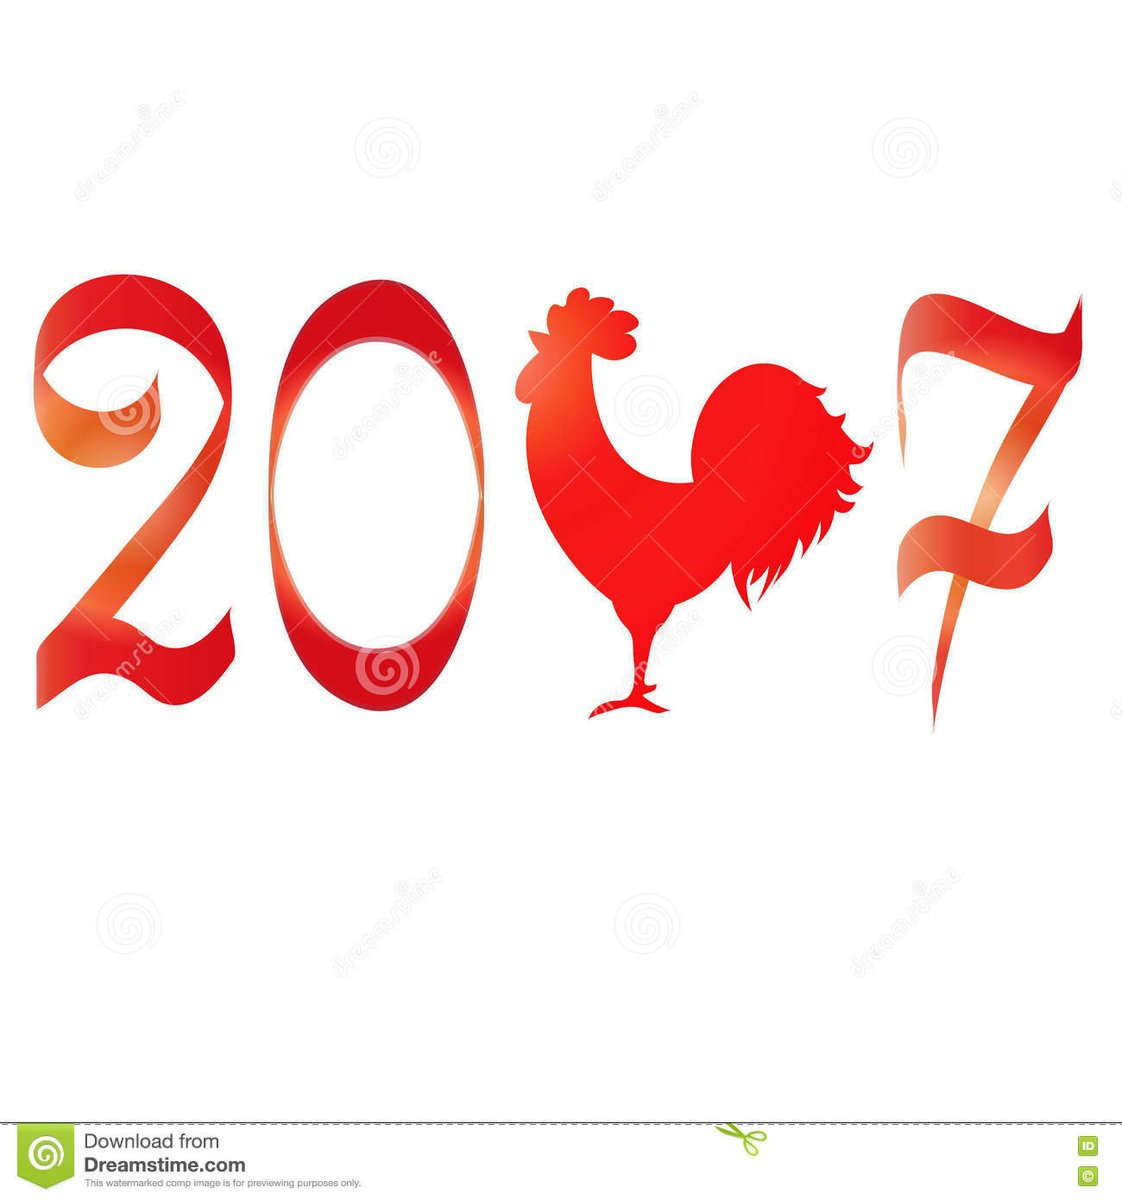 #BonneAnnee #HappyChineseNewYear  le #Coq : Year of the Rooster &amp; symbol of #France!<br>http://pic.twitter.com/koD9mtDKcE